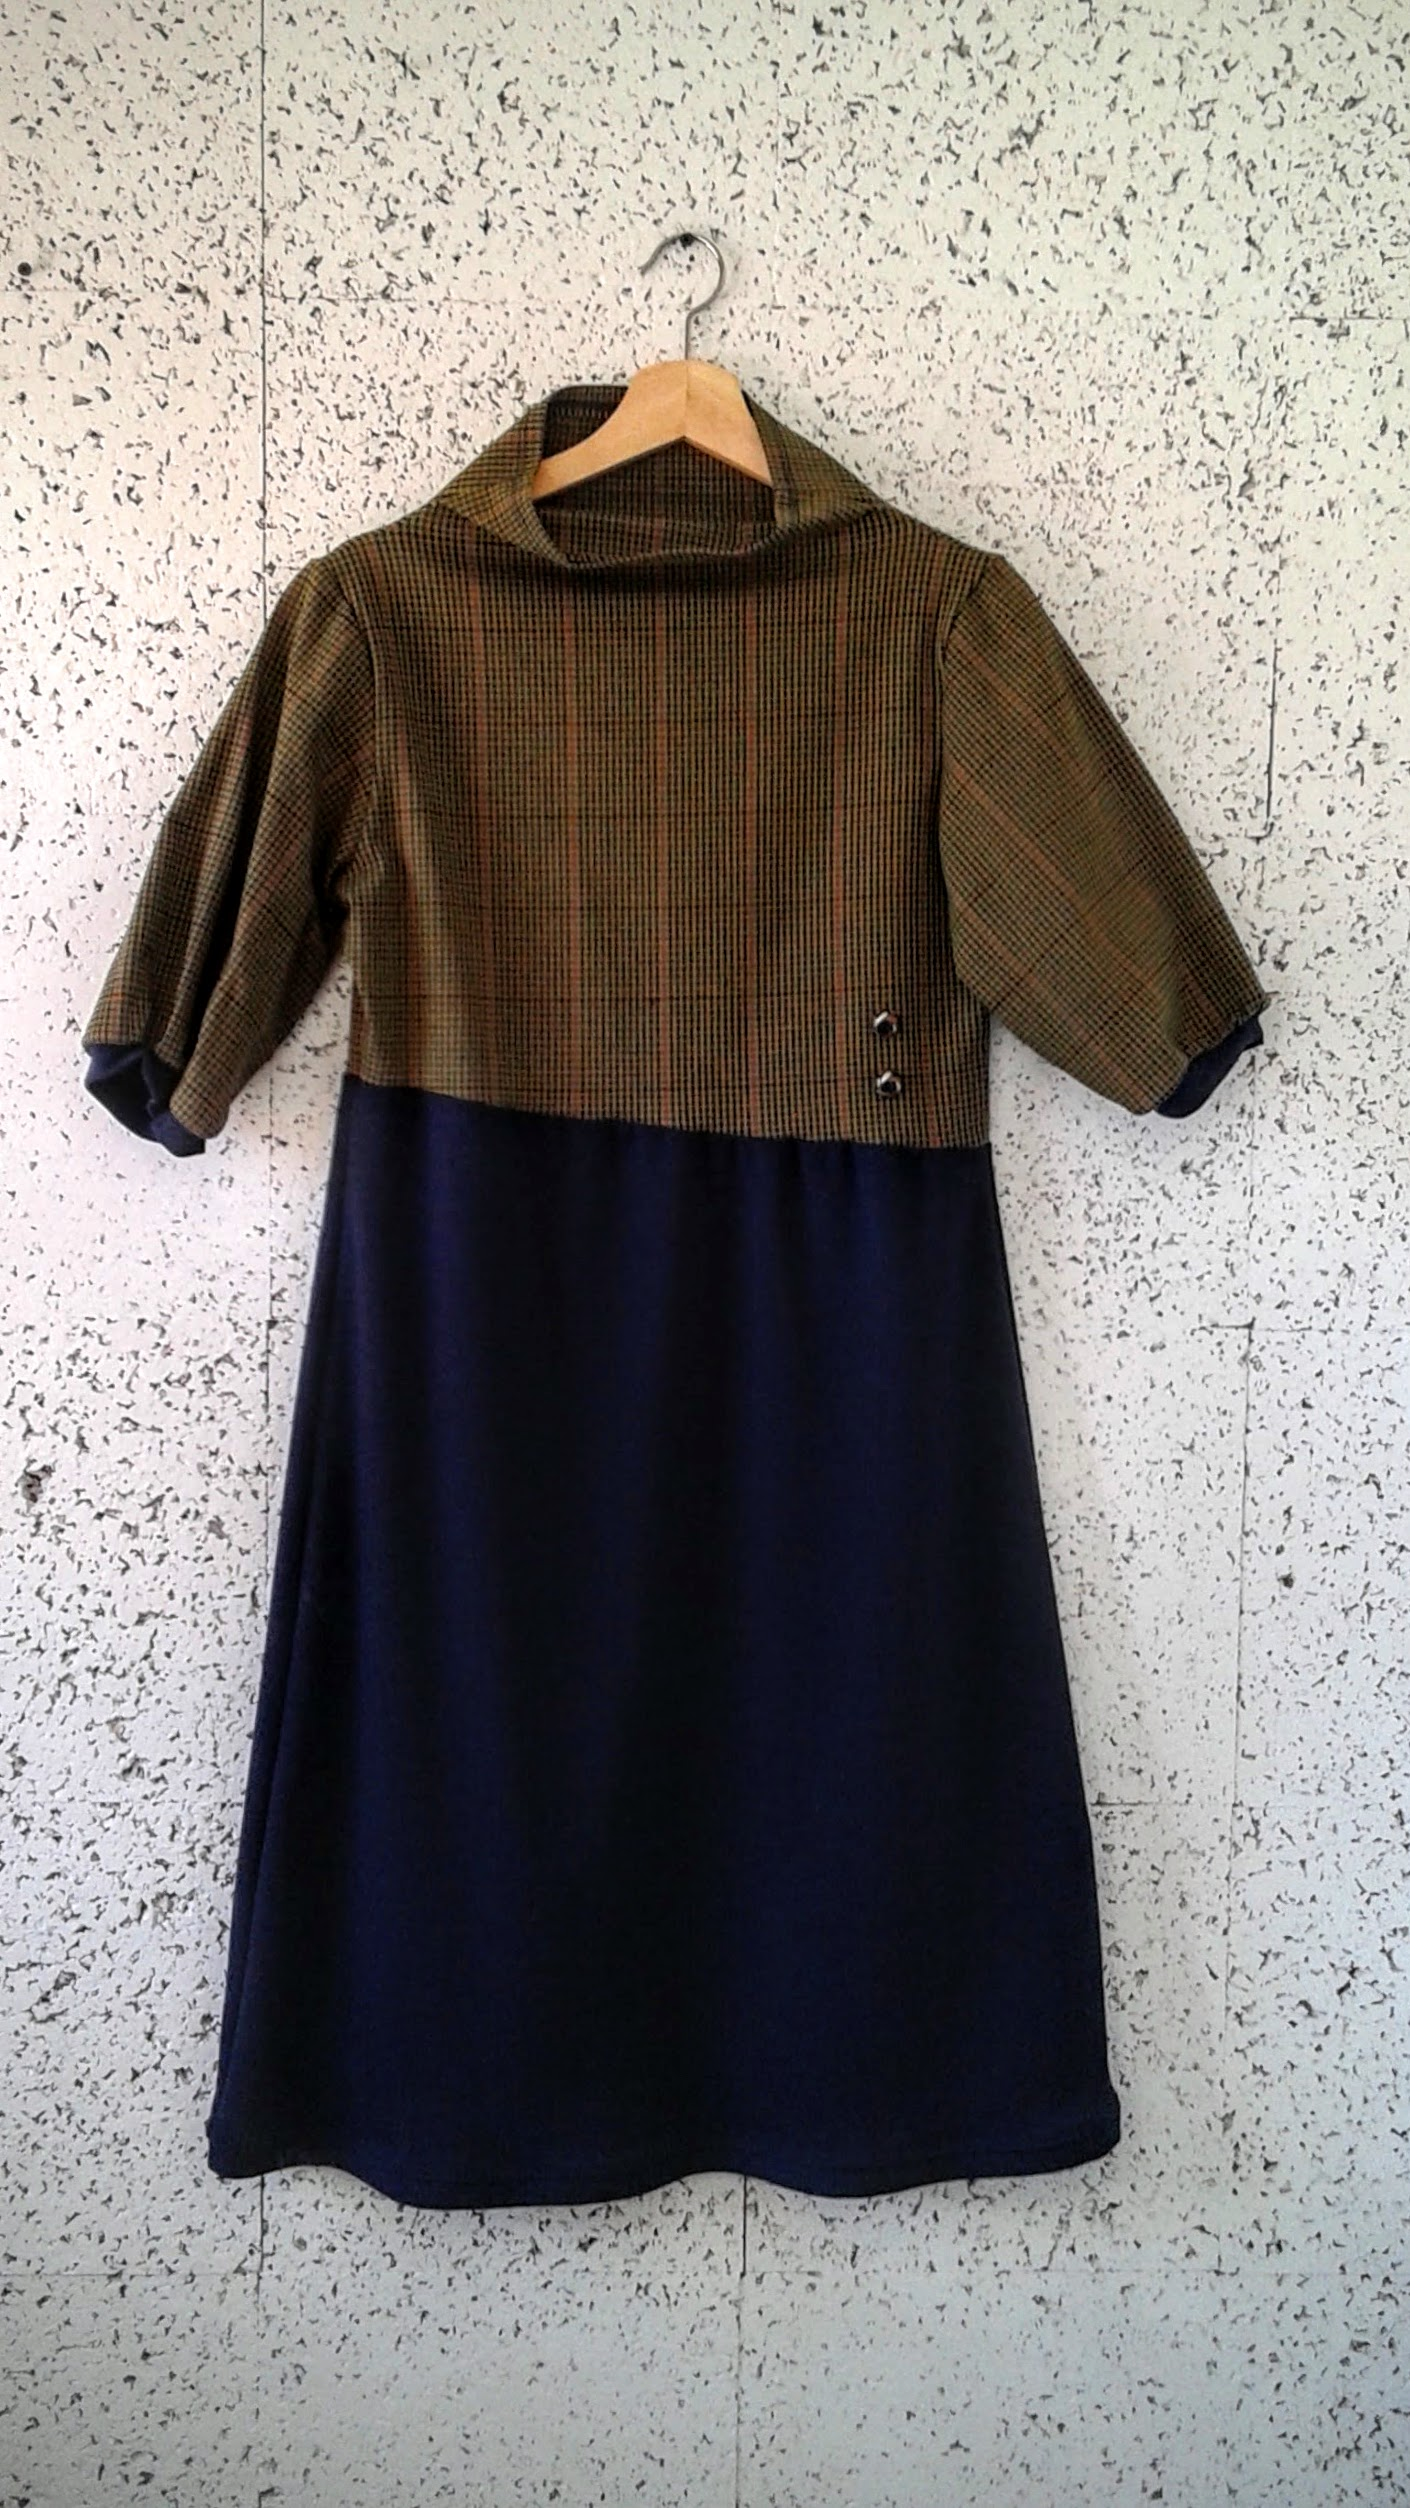 Oxford By Train dress; Size L, $38